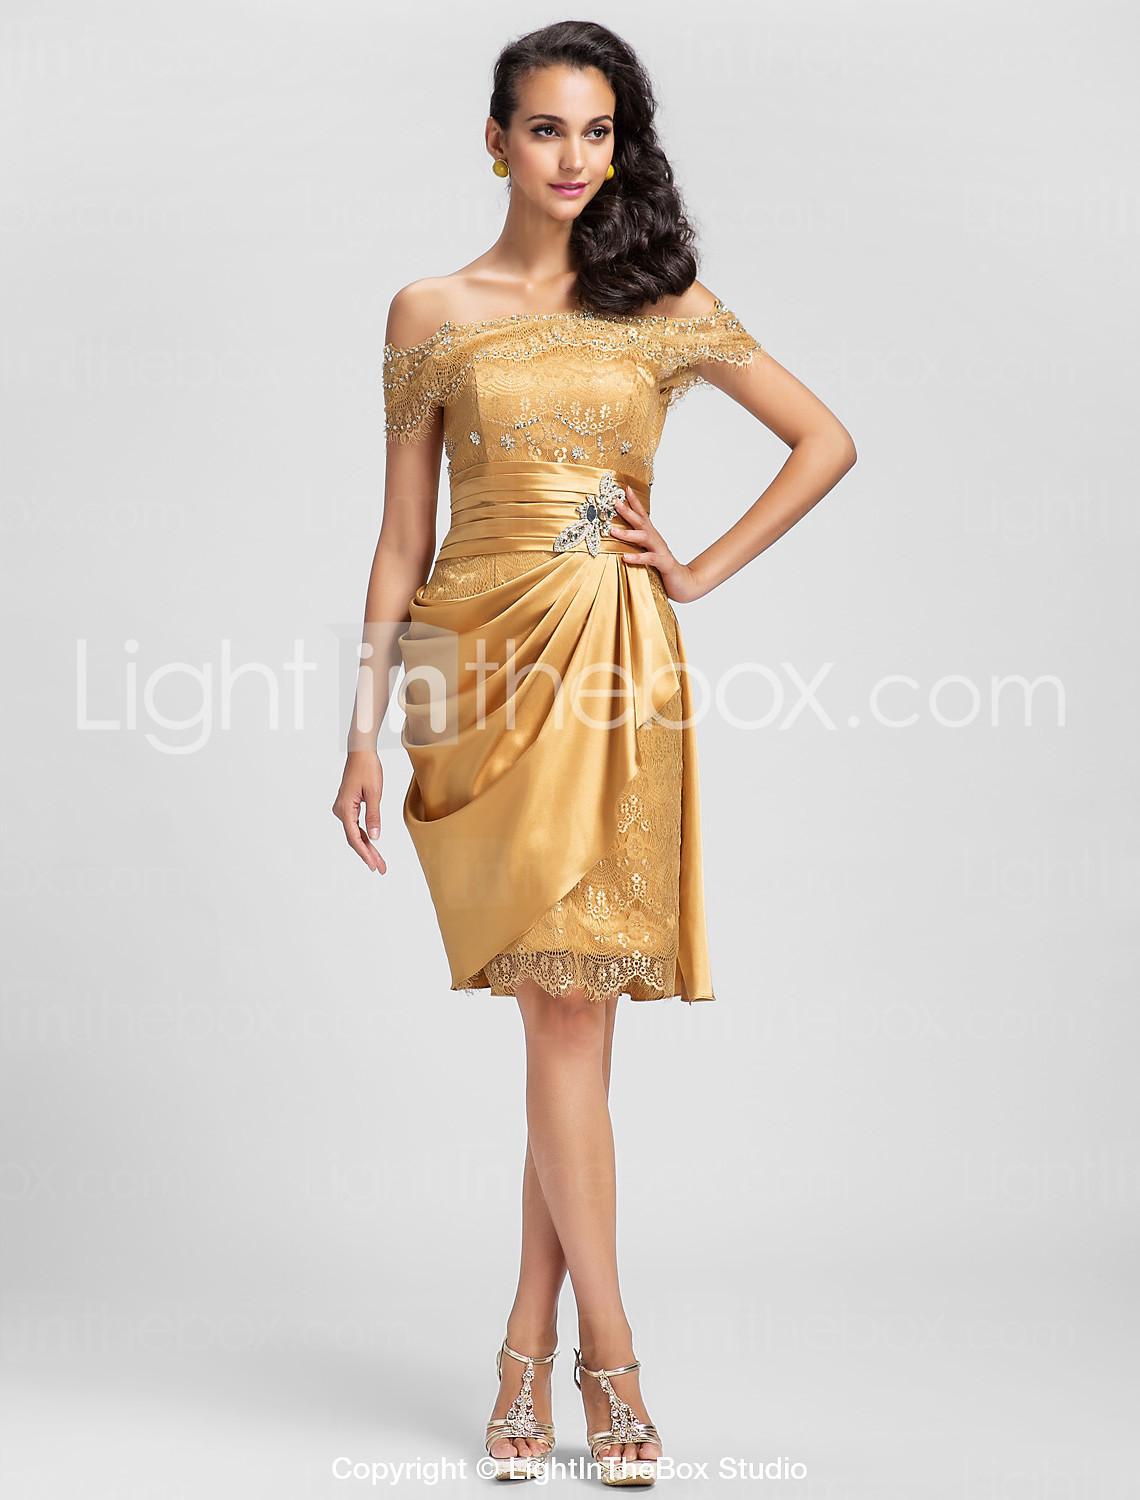 women's dressy evening jackets